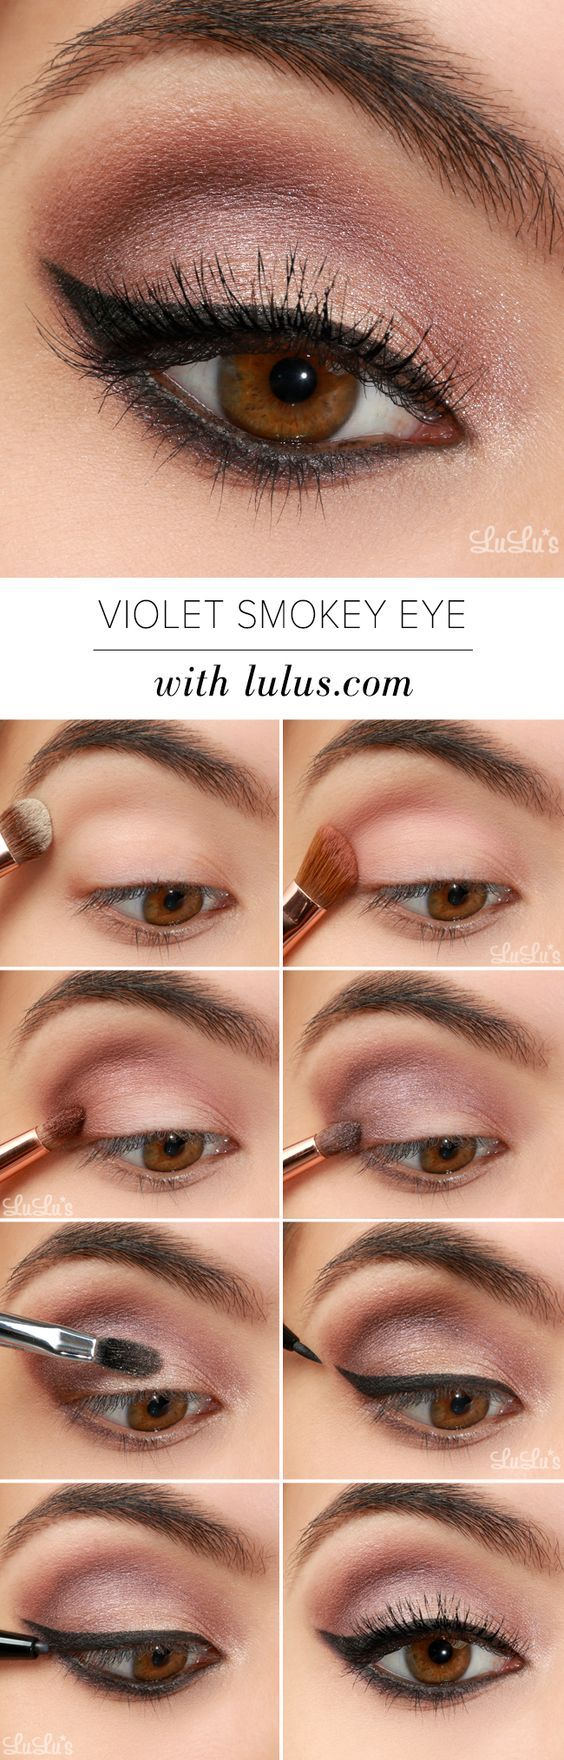 Violet Smokey Eye Makeup Tutorial offers a dreamy neutral look with a subtle pop of color! Give it a whirl and follow step-by-step. http://blog.lulus.com/beauty/lulus-how-to-violet-smokey-eye-makeup-tutorial/